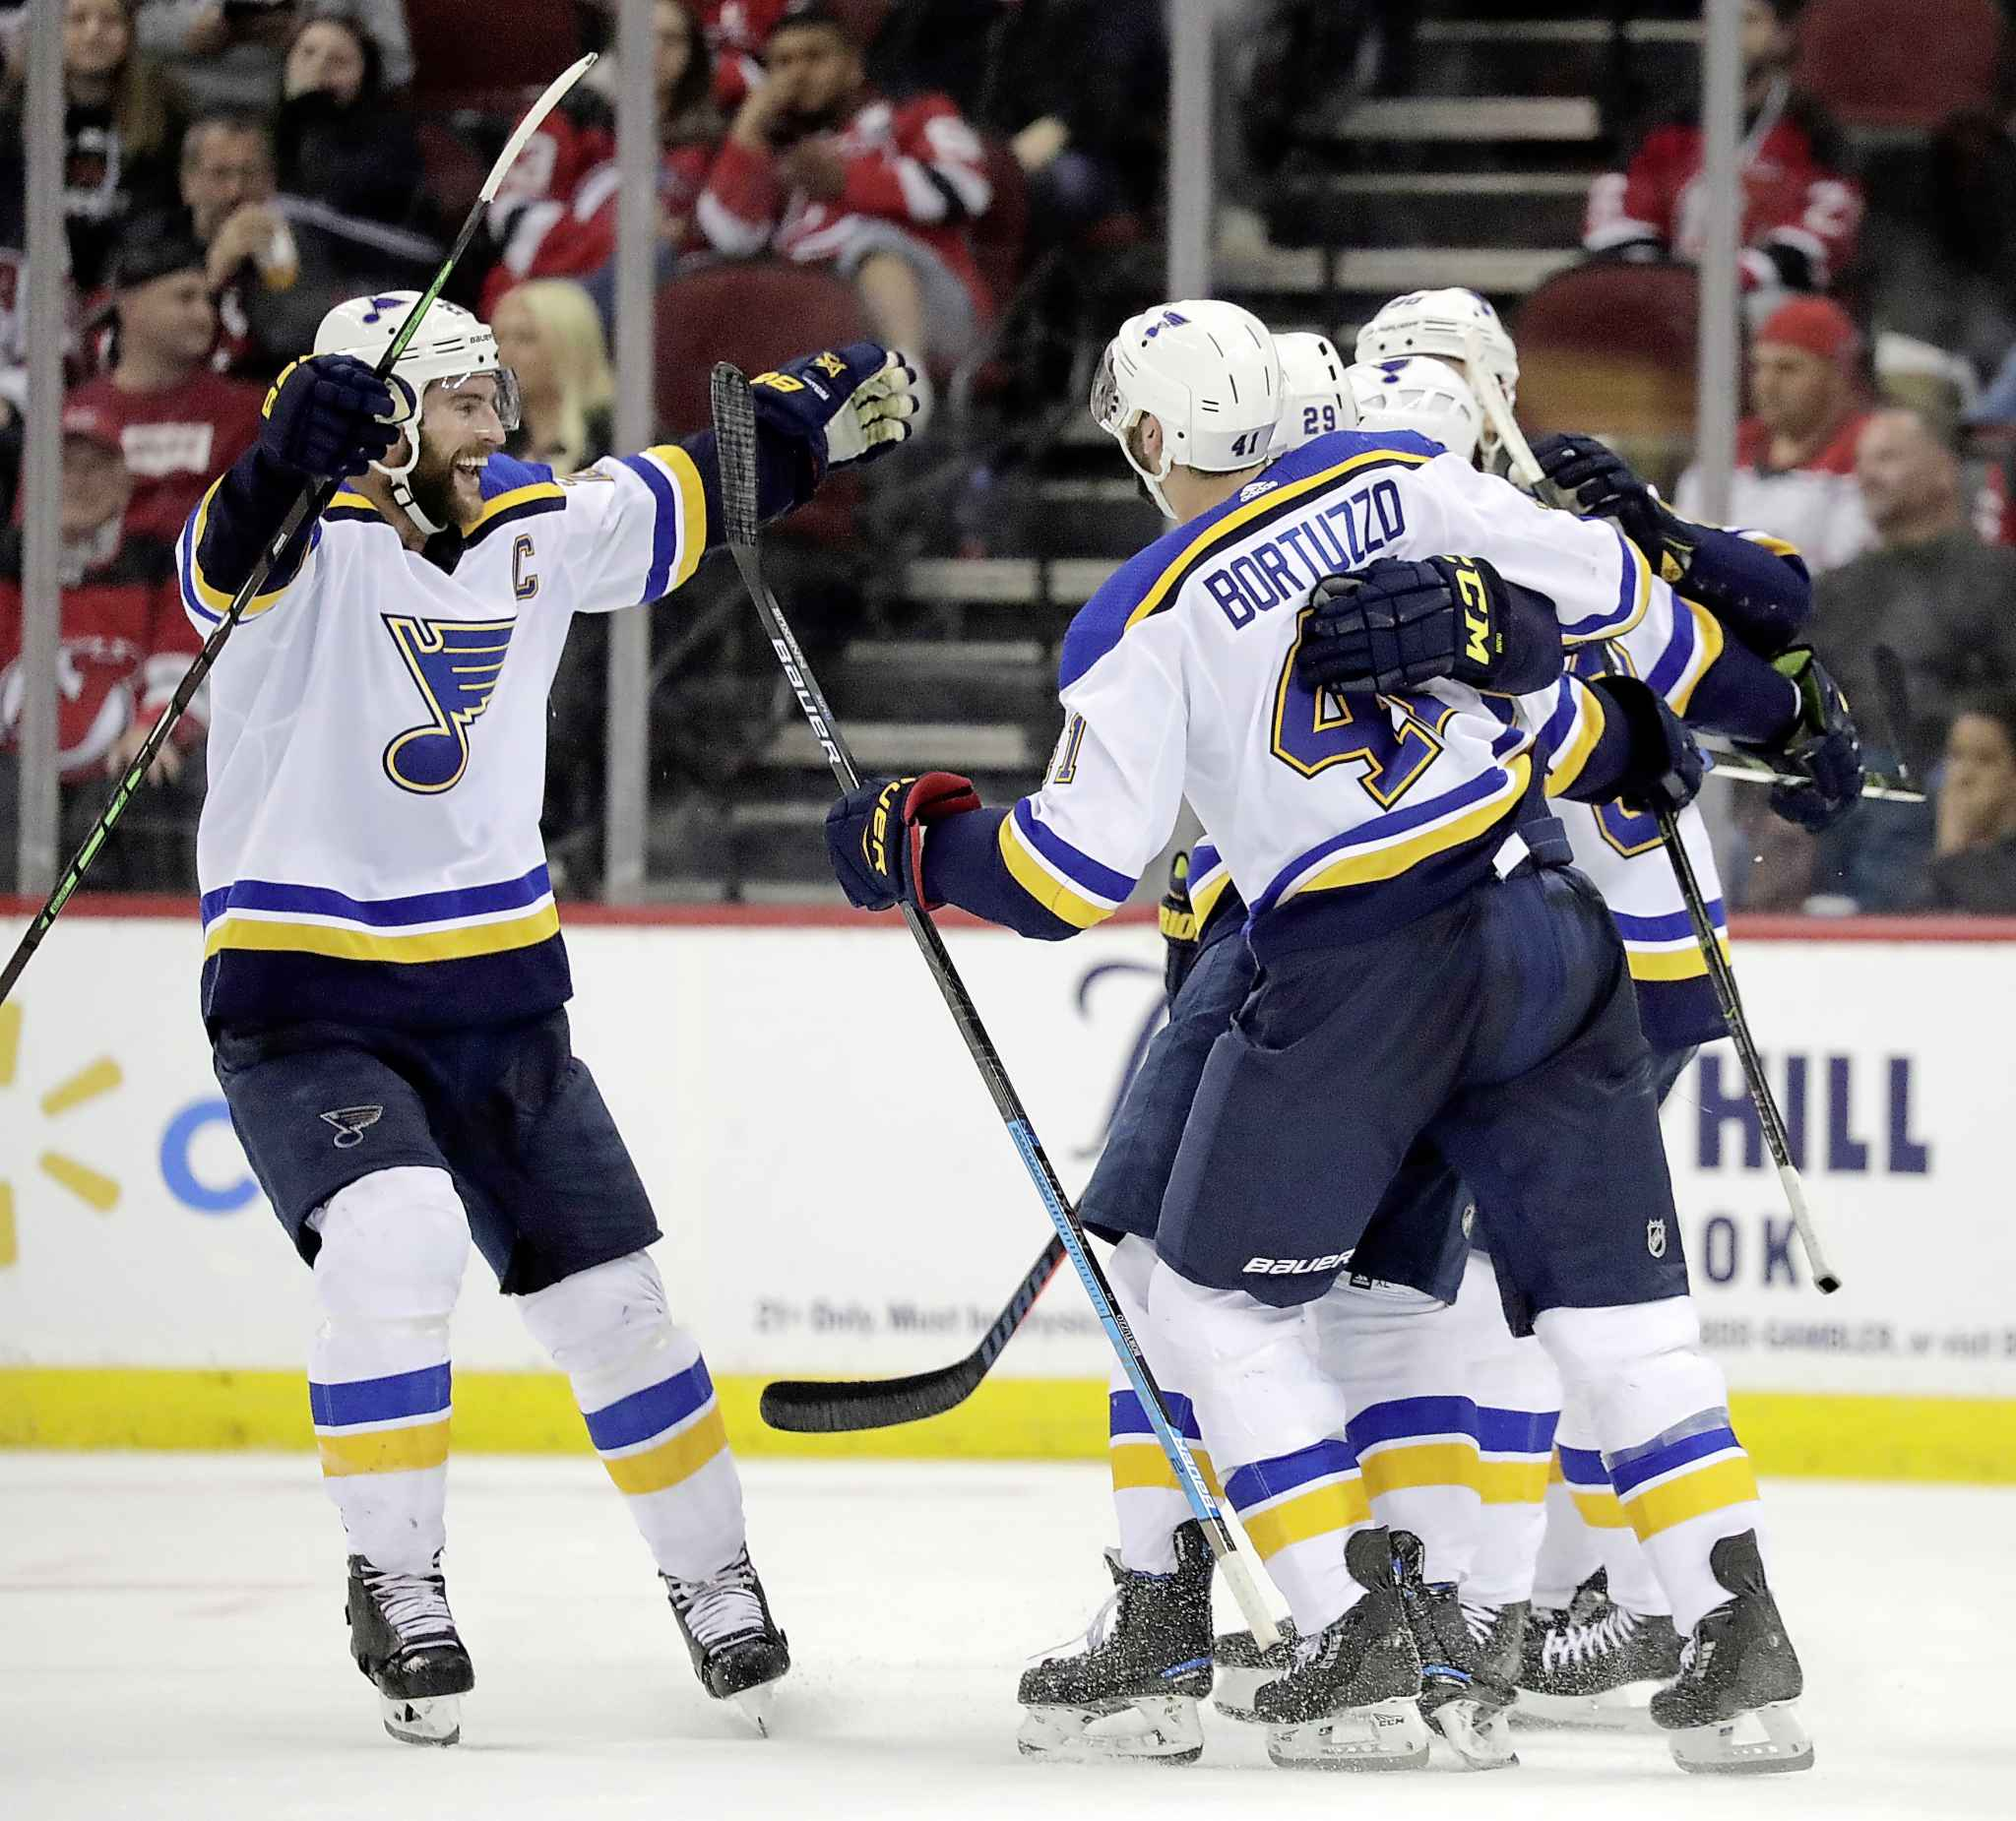 The Jets and St. Louis Blues are currently tied for second spot, so the Jets have to mirror what the Blues do Saturday to get home-ice advantage when the playoffs start, potentially against the red-hot team. (Julio Cortez / The Associated Press files)